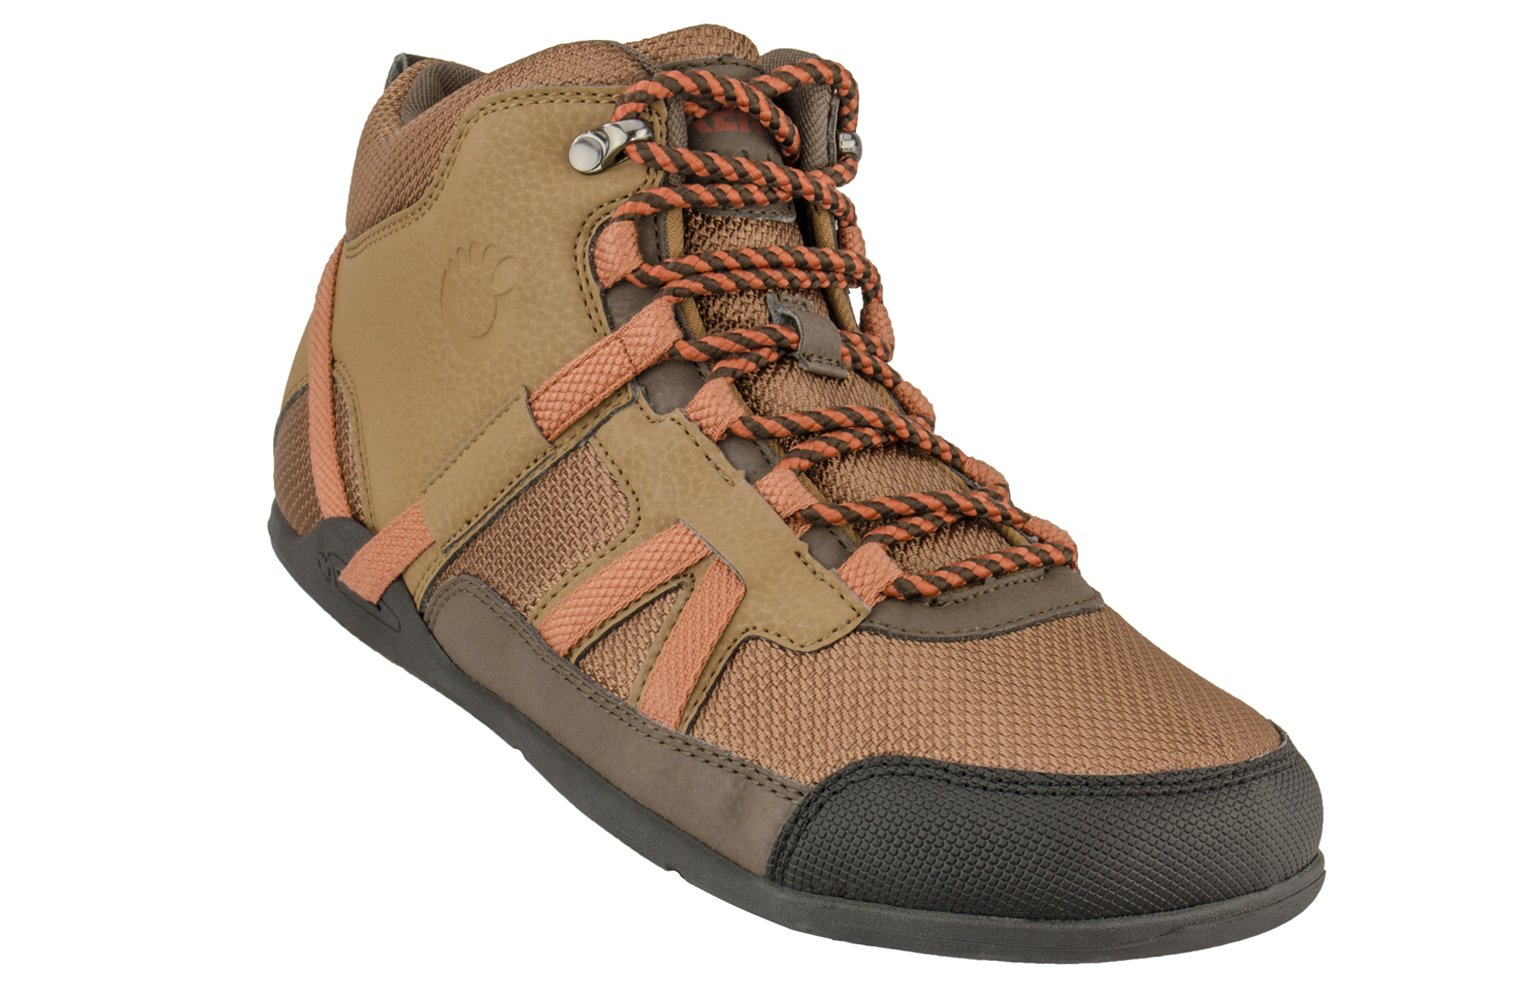 Xero Shoes DayLite Hiker - Lightweight Minimalist, Barefoot-Inspired Hiking Boot - Men's 11 by Xero Shoes